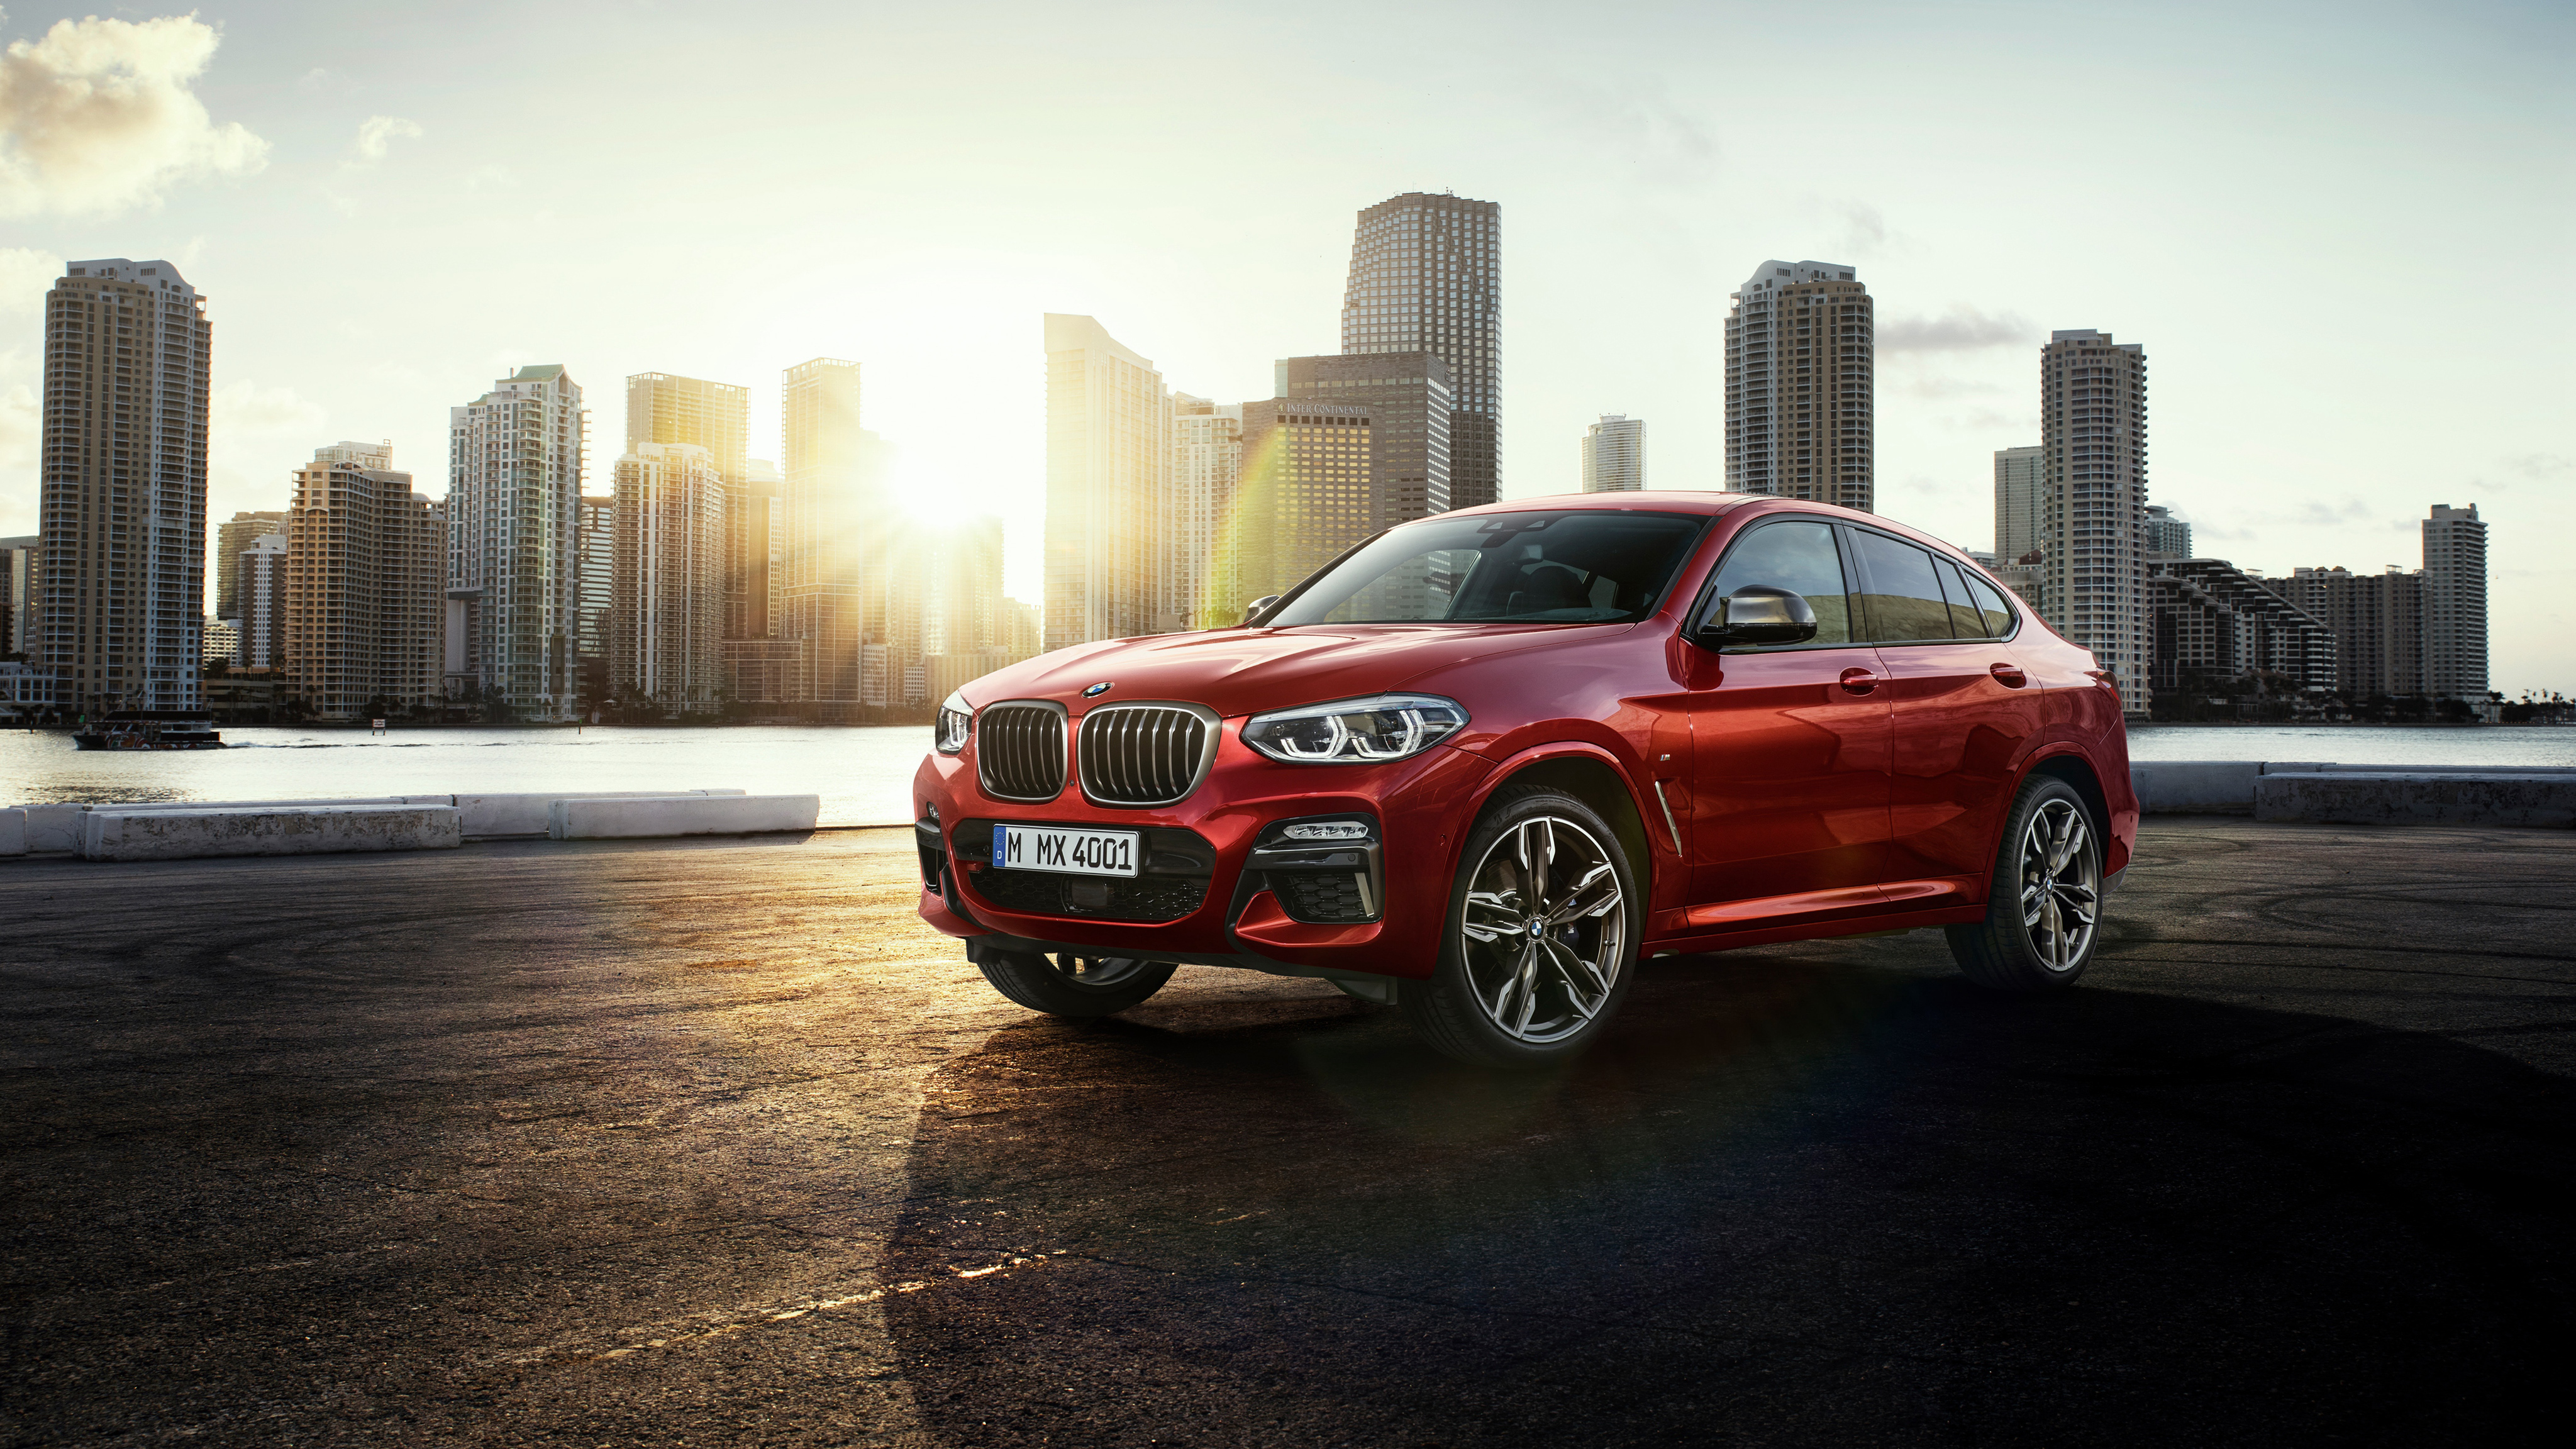 2019 Bmw X4 M40d 4k Wallpaper Hd Car Wallpapers Id 9610